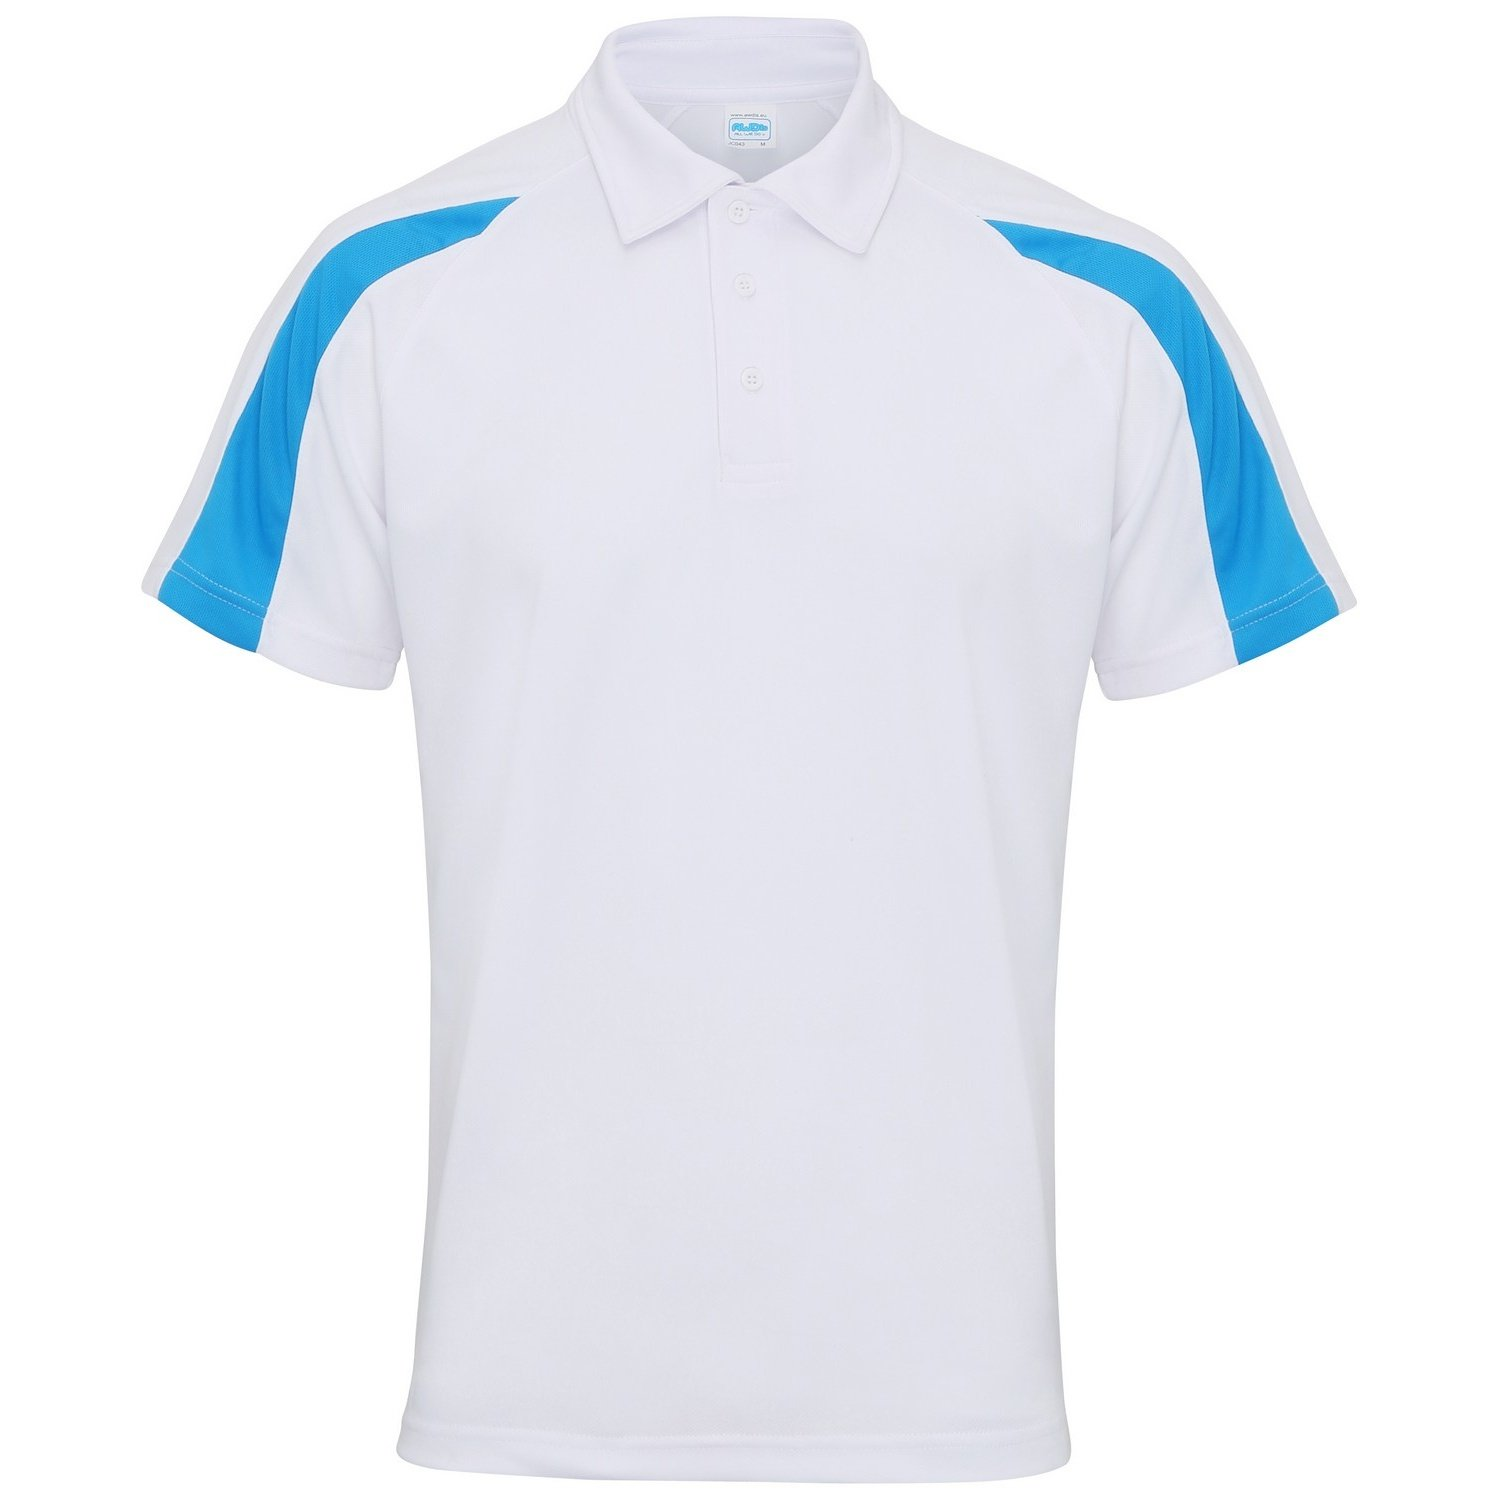 AWDis Just Cool Herren Kurzarm Polo Shirt mit Kontrast Panel: Amazon.de:  Bekleidung